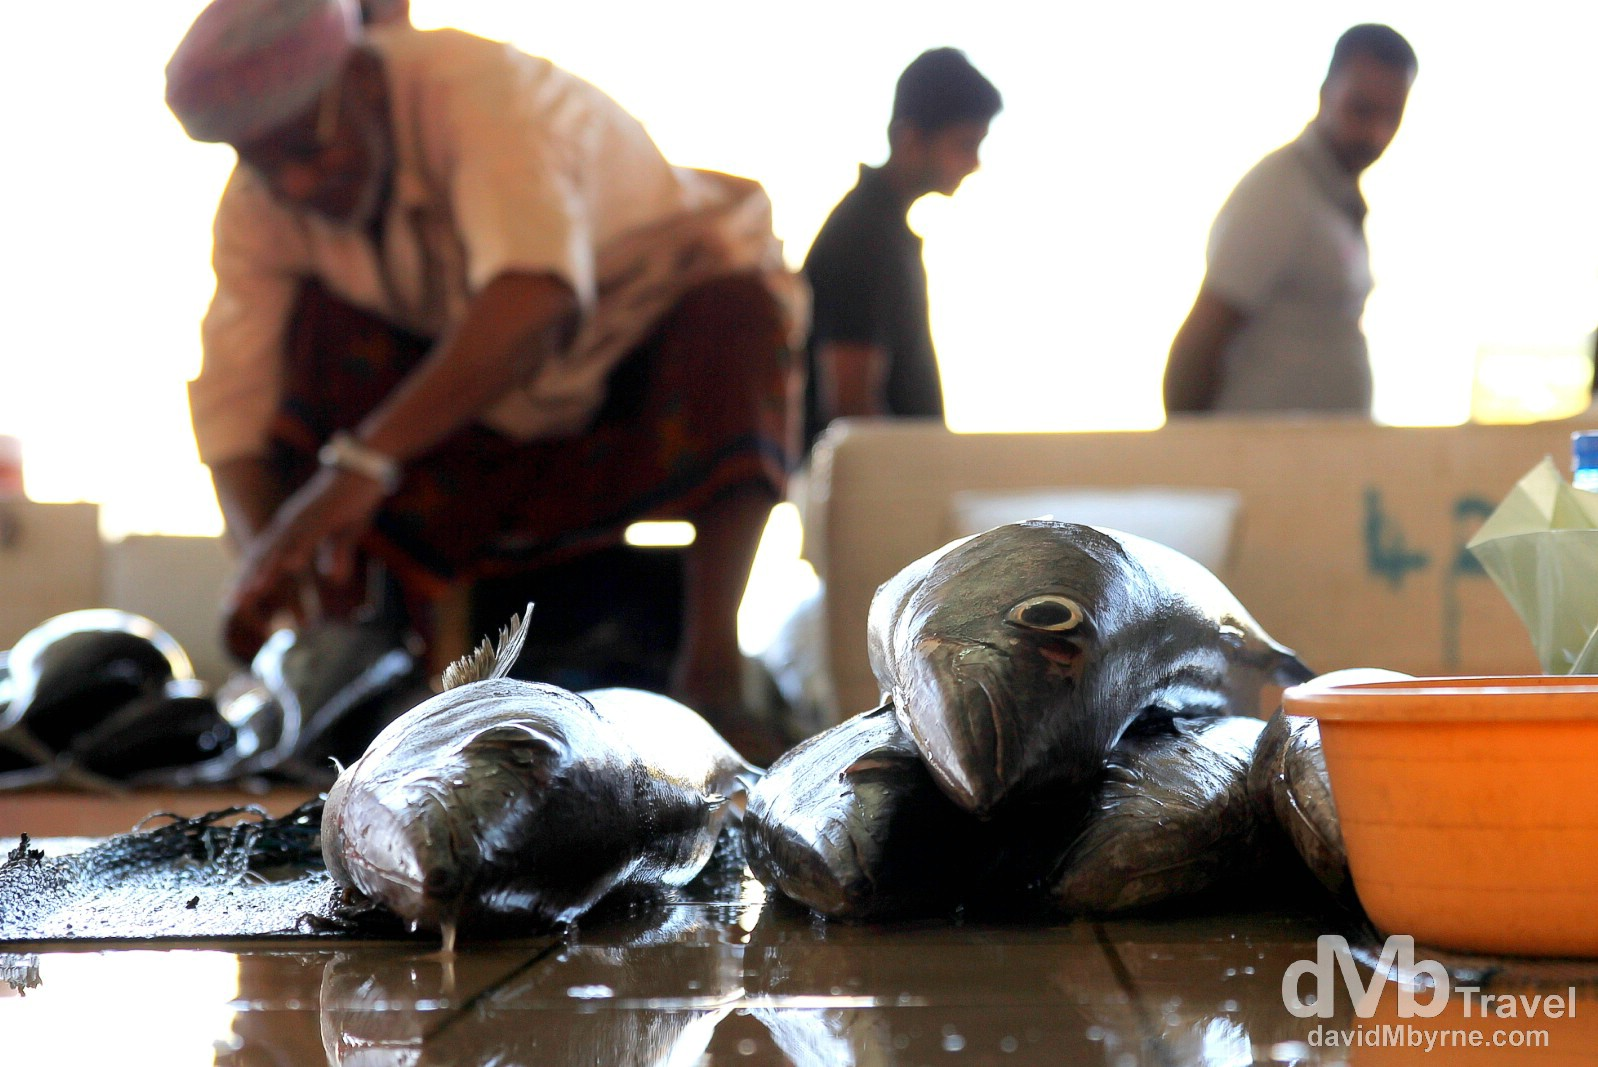 Fish Market, Mutrah, Muscat, Oman. April 26th, 2014.